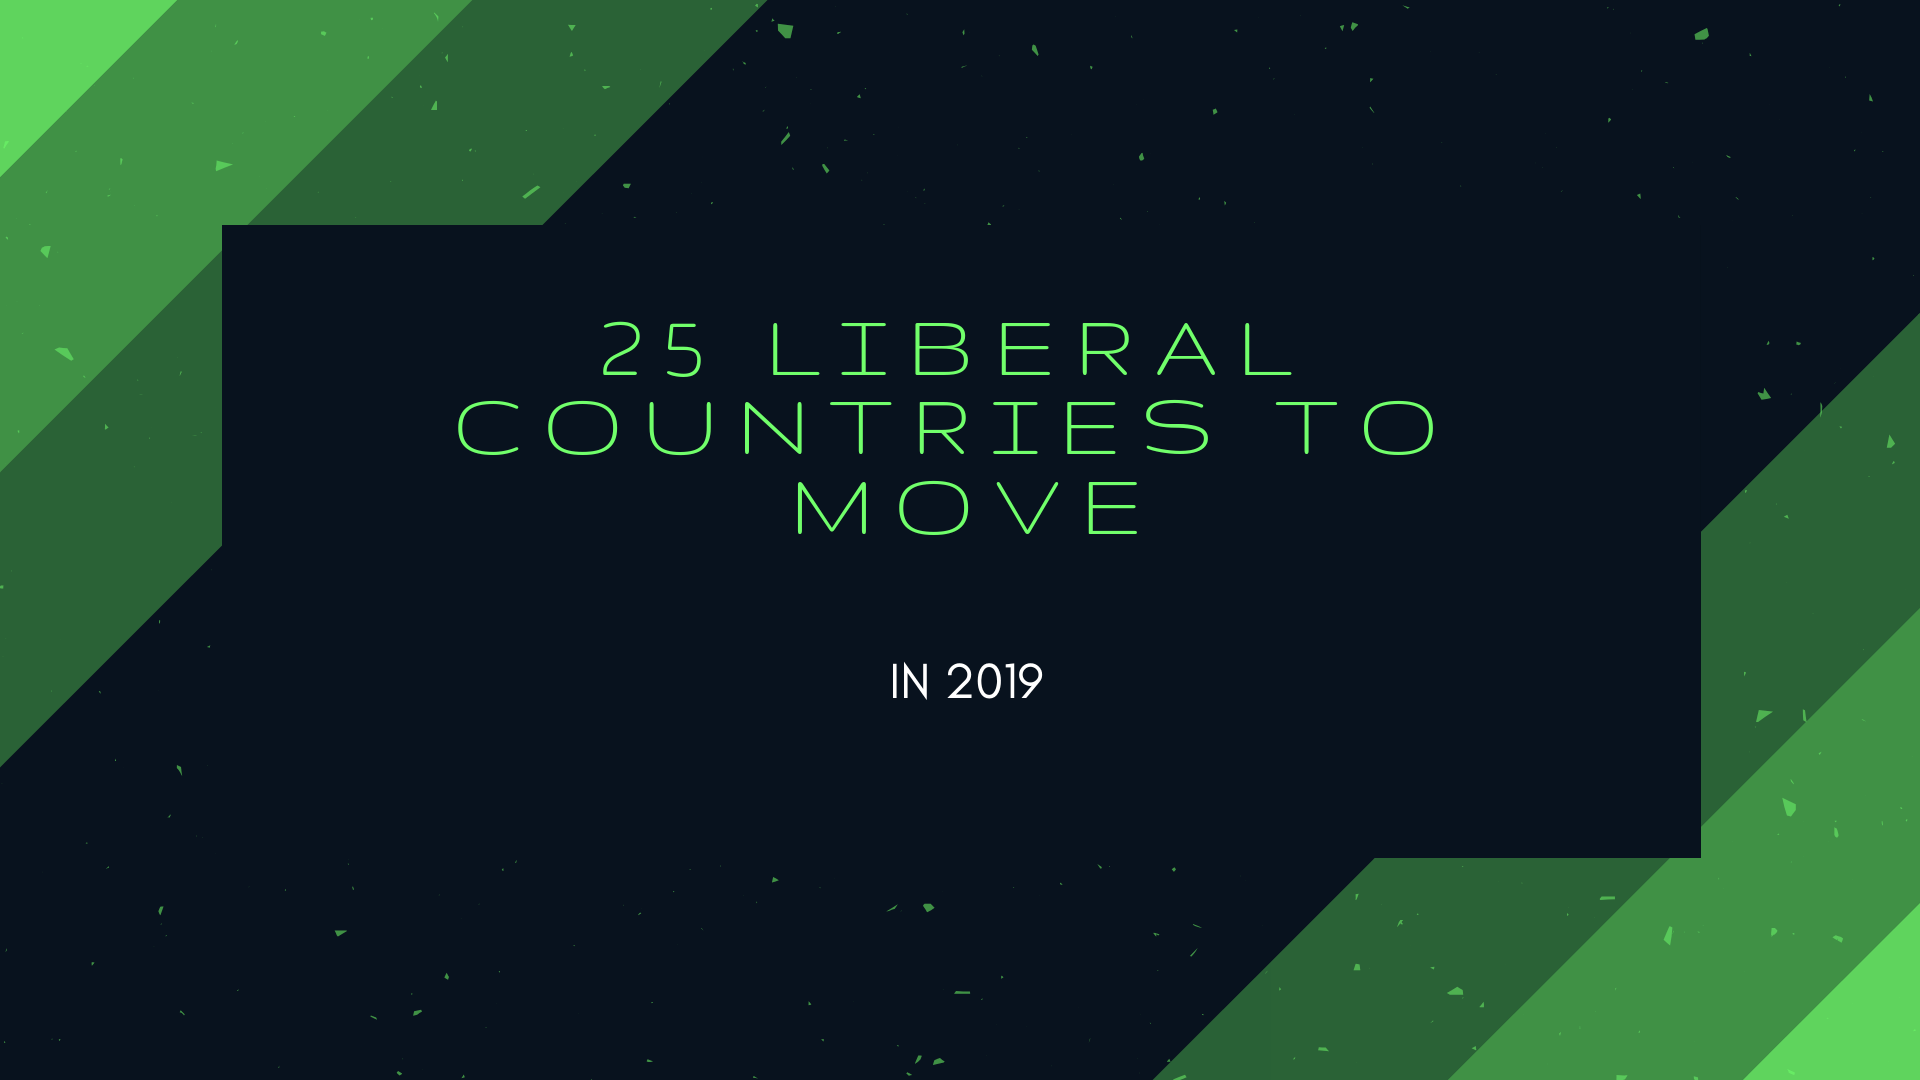 LIBERAL COUNTRIES TO MOVE